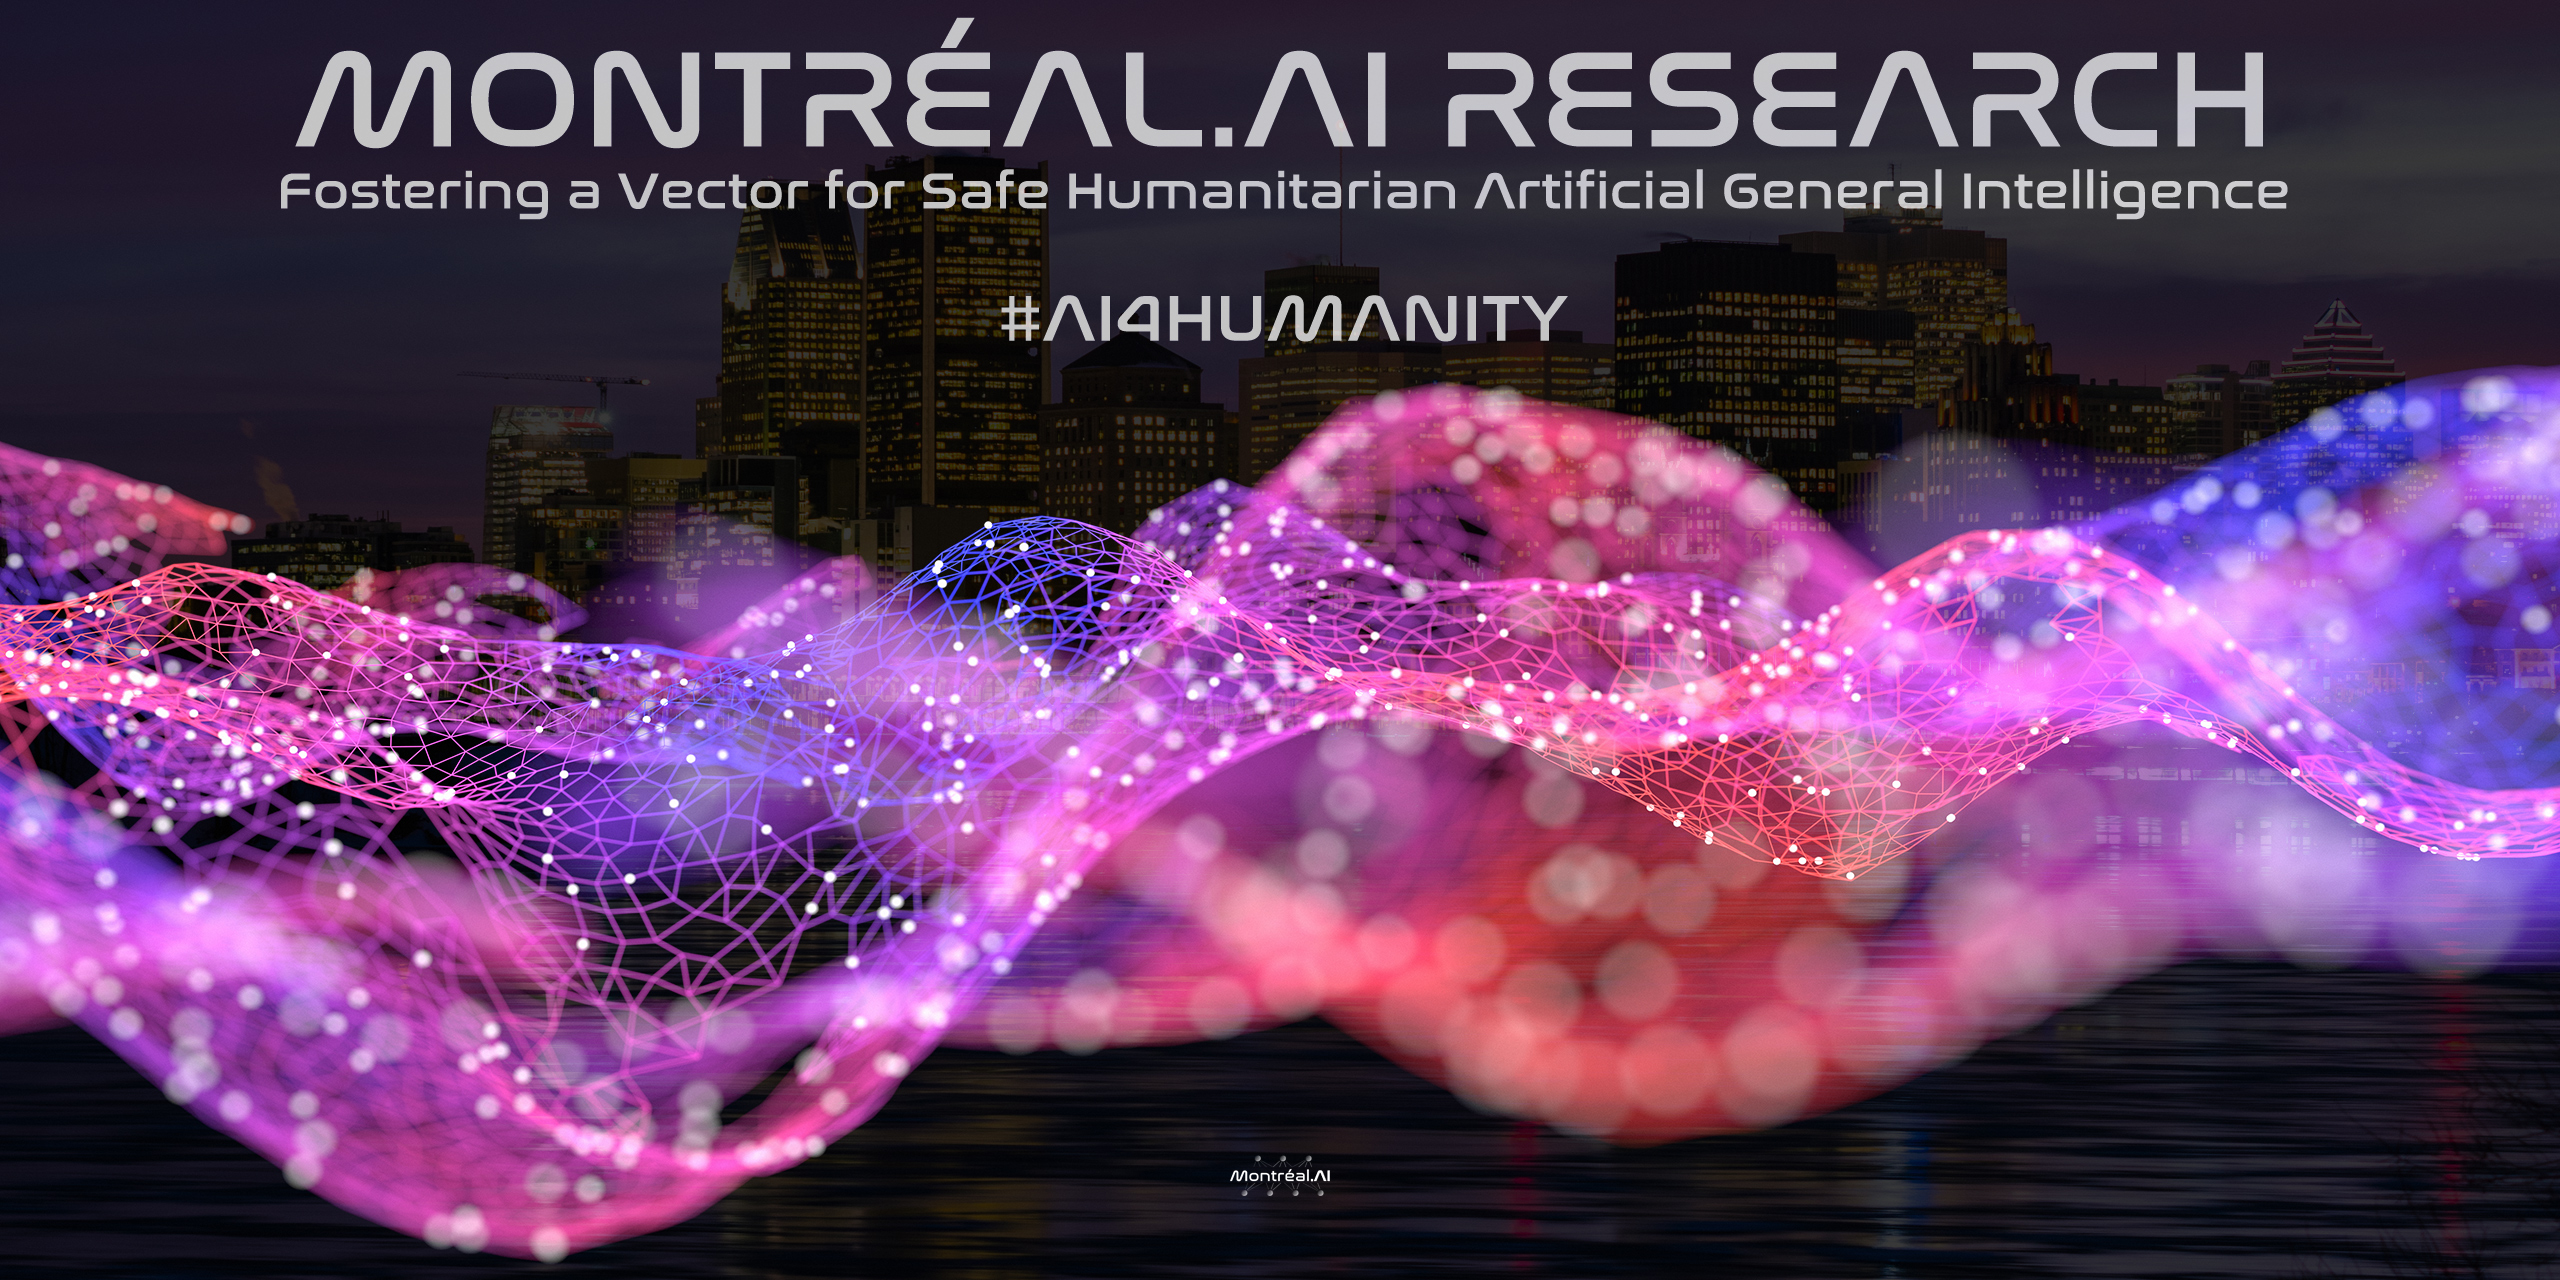 Artificial General Intelligence (AGI) is the Most Ambitious Scientific Quest in Human History